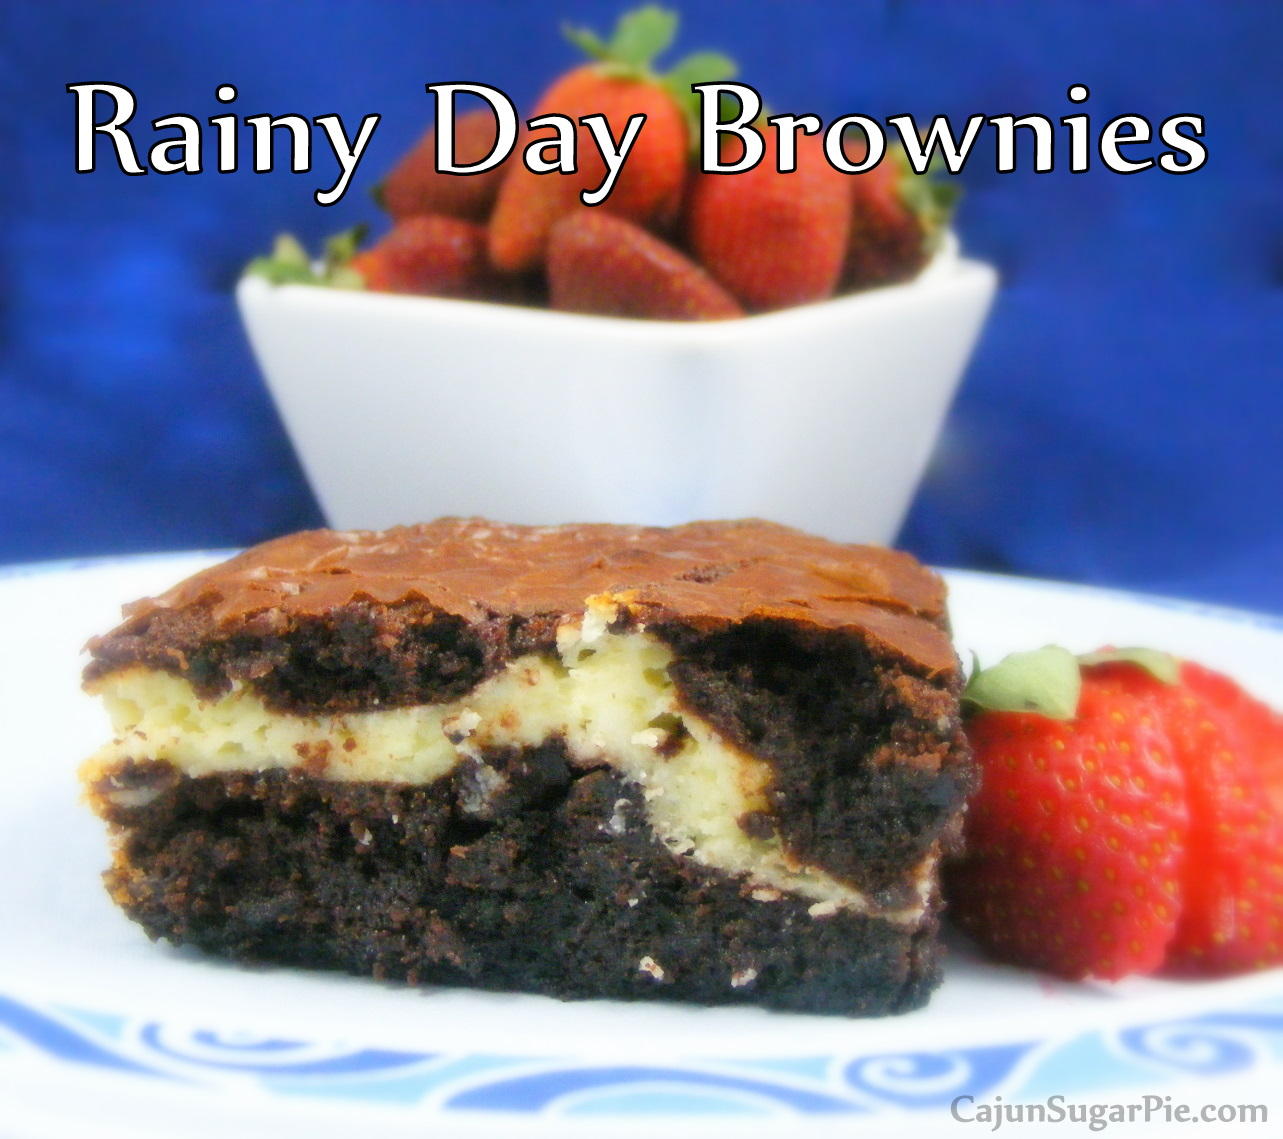 Rainy Day Brownies